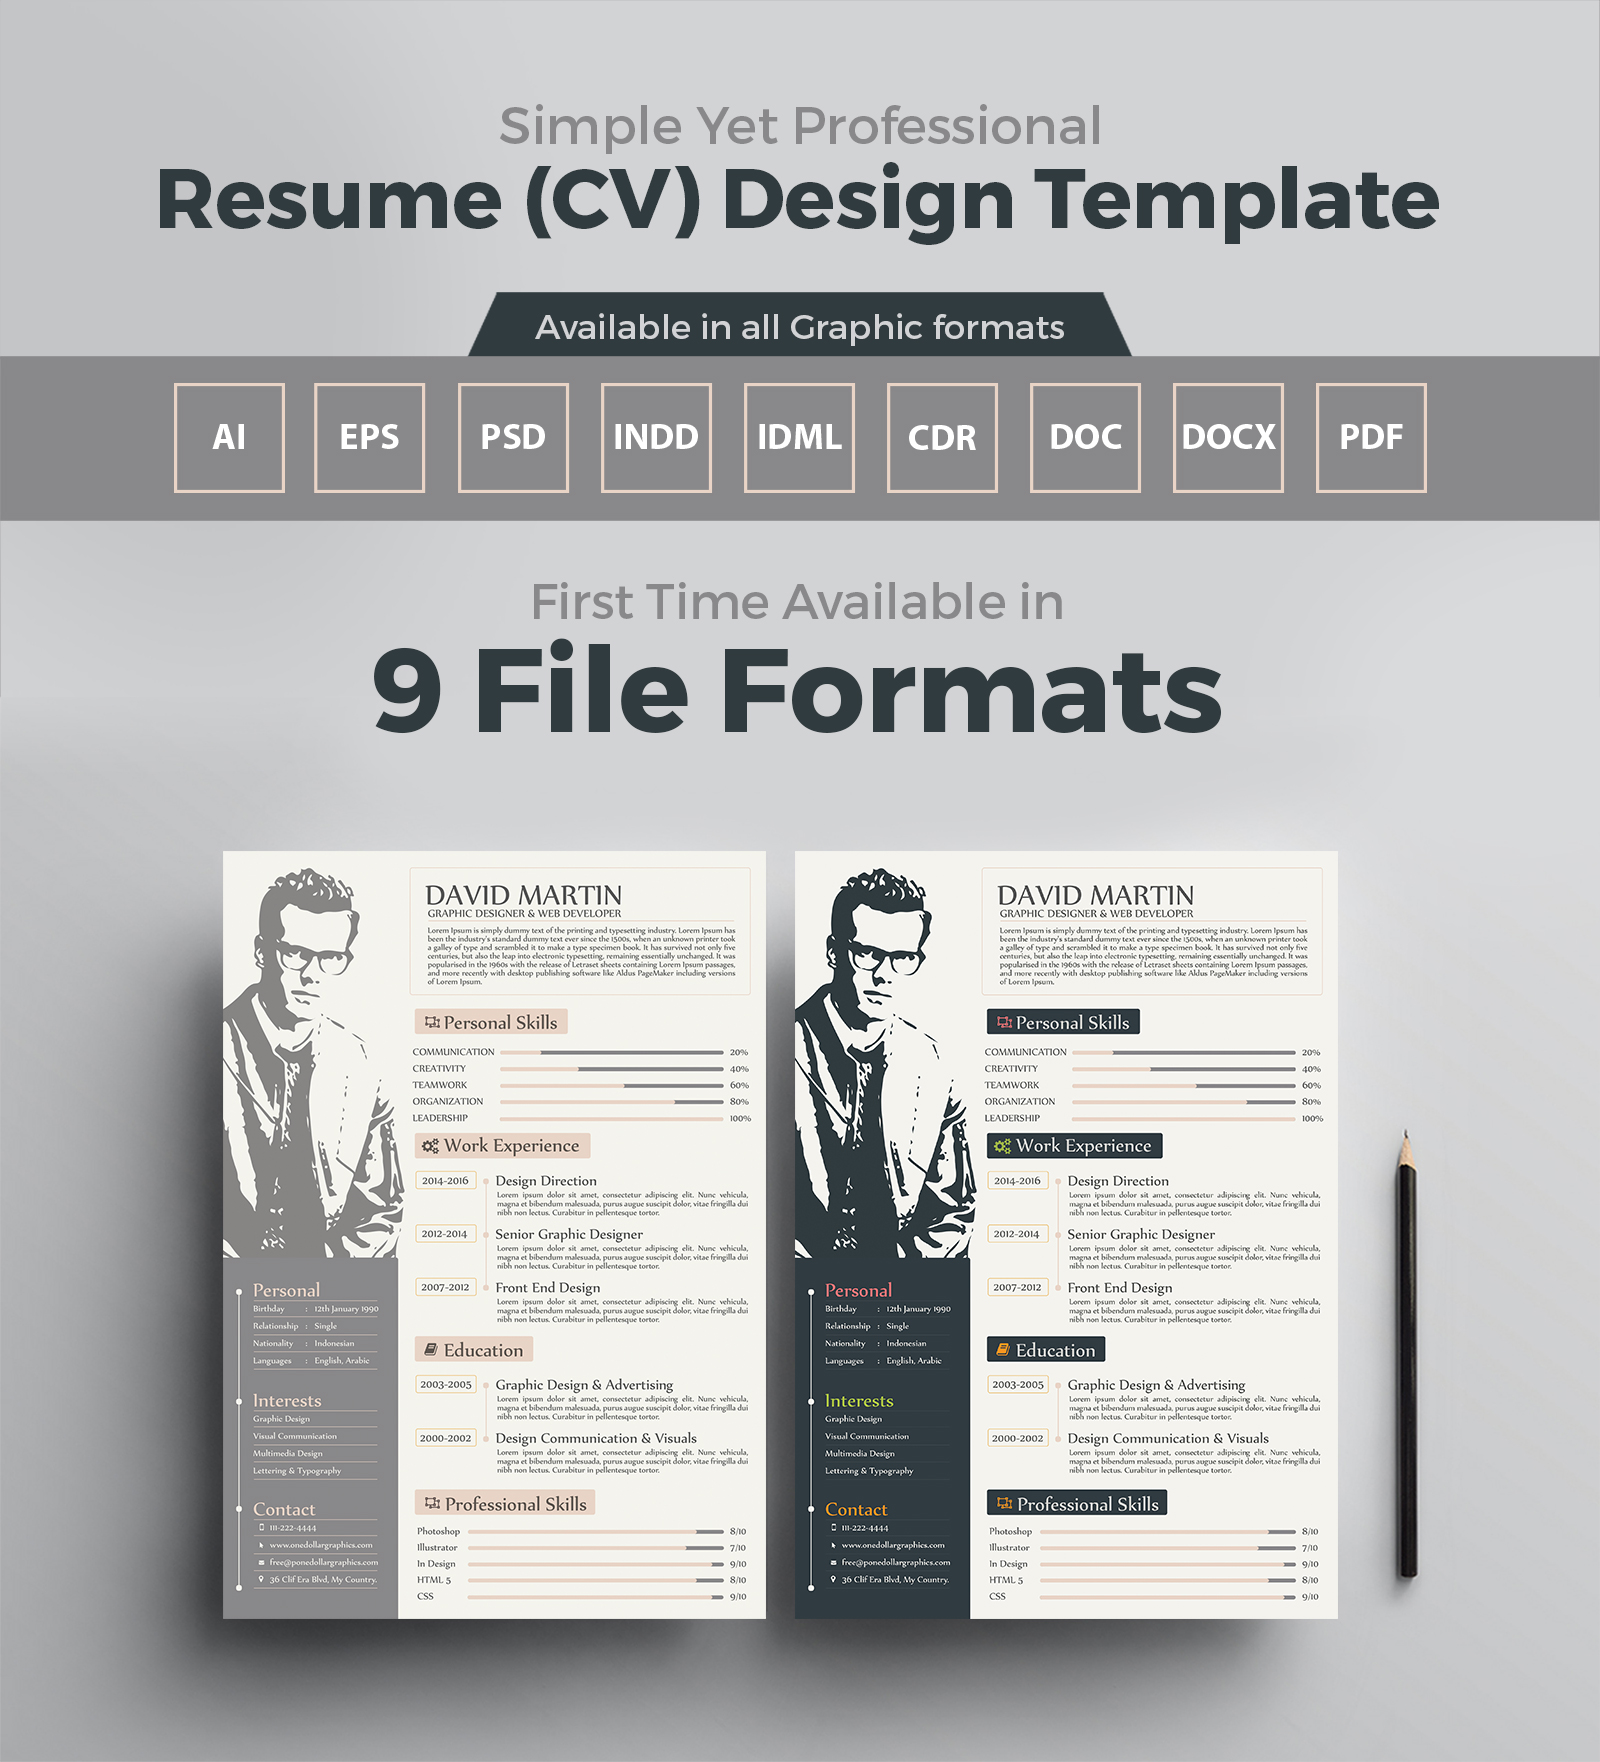 resume template for graphic designers web developers in - Resume Templates For Graphic Designers